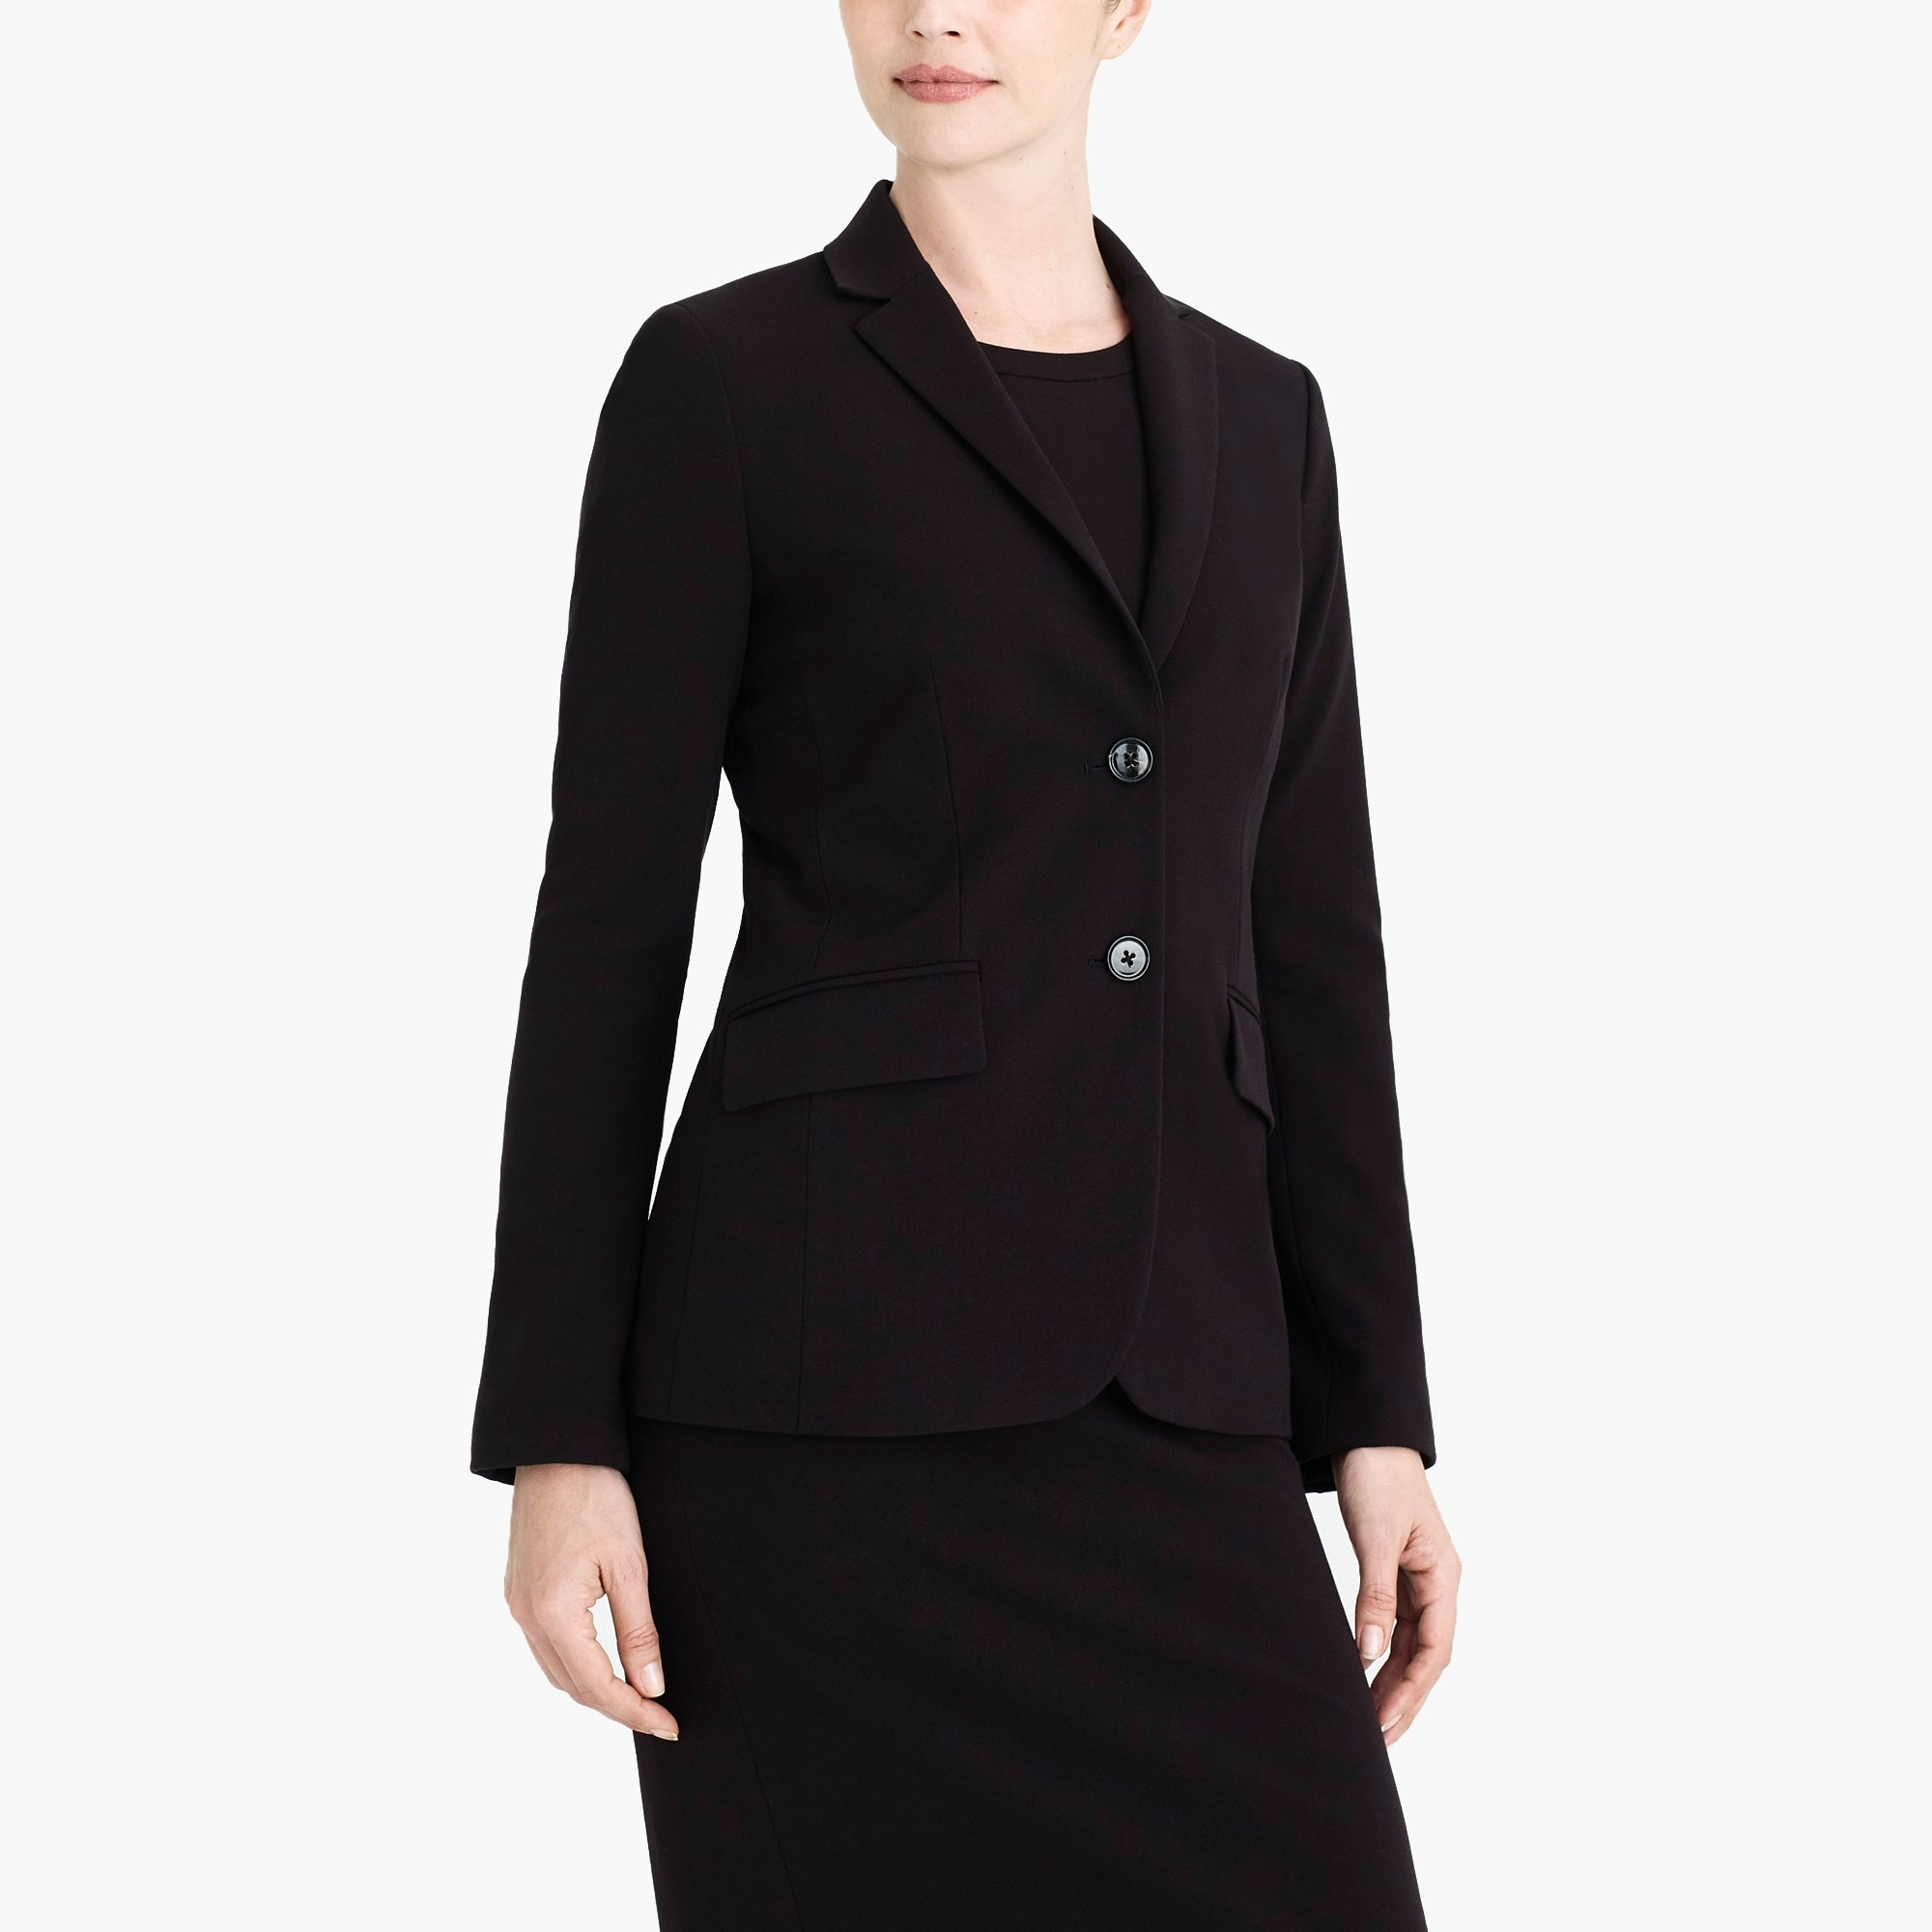 petite classic work blazer : factorywomen suiting